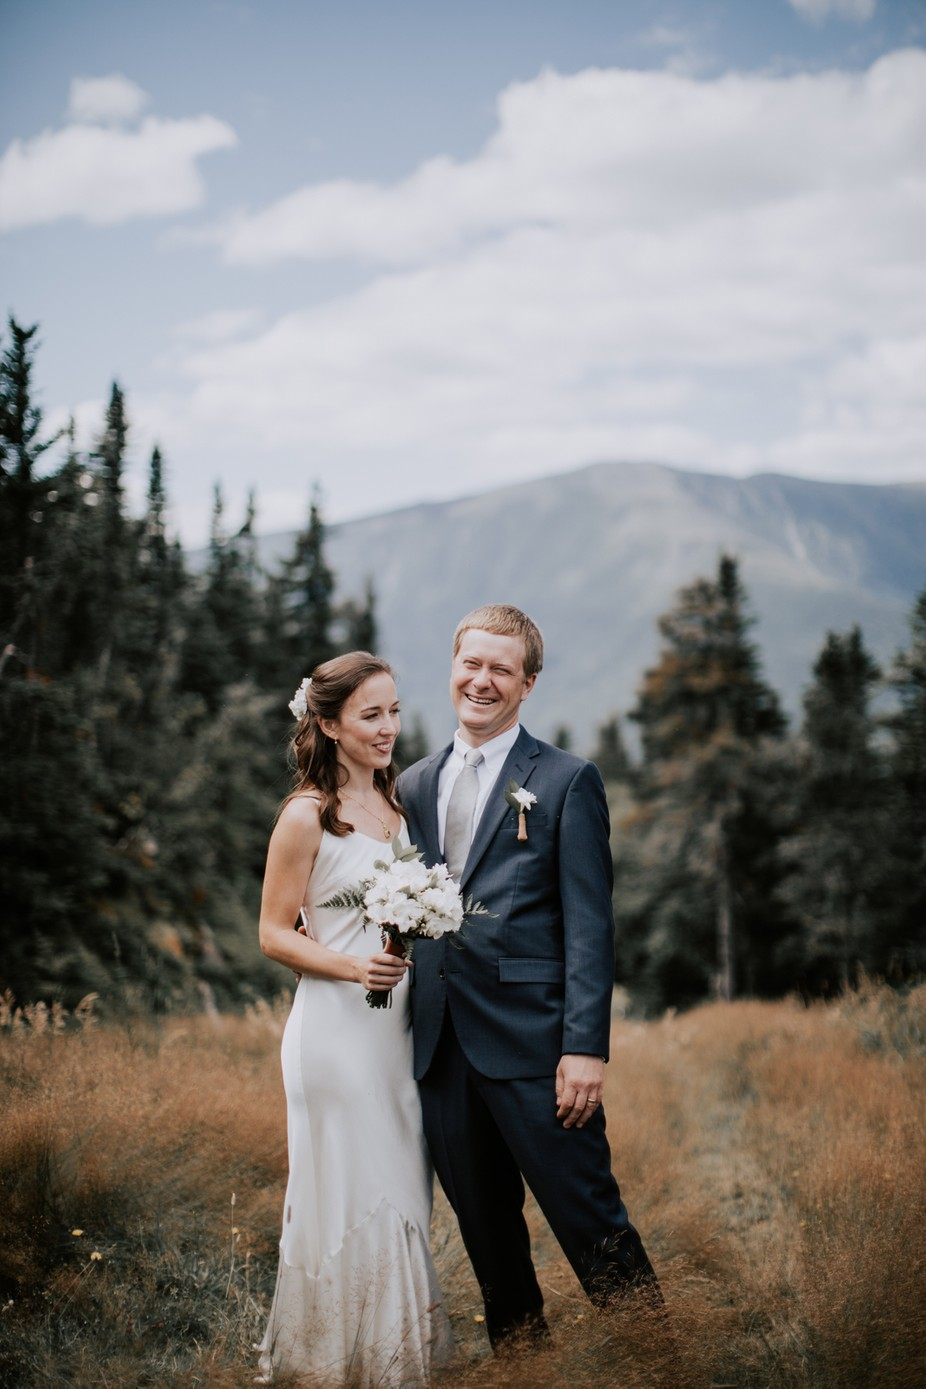 Liz & Duncan by WebHeadPhotography - All About The Wedding Photo Contest